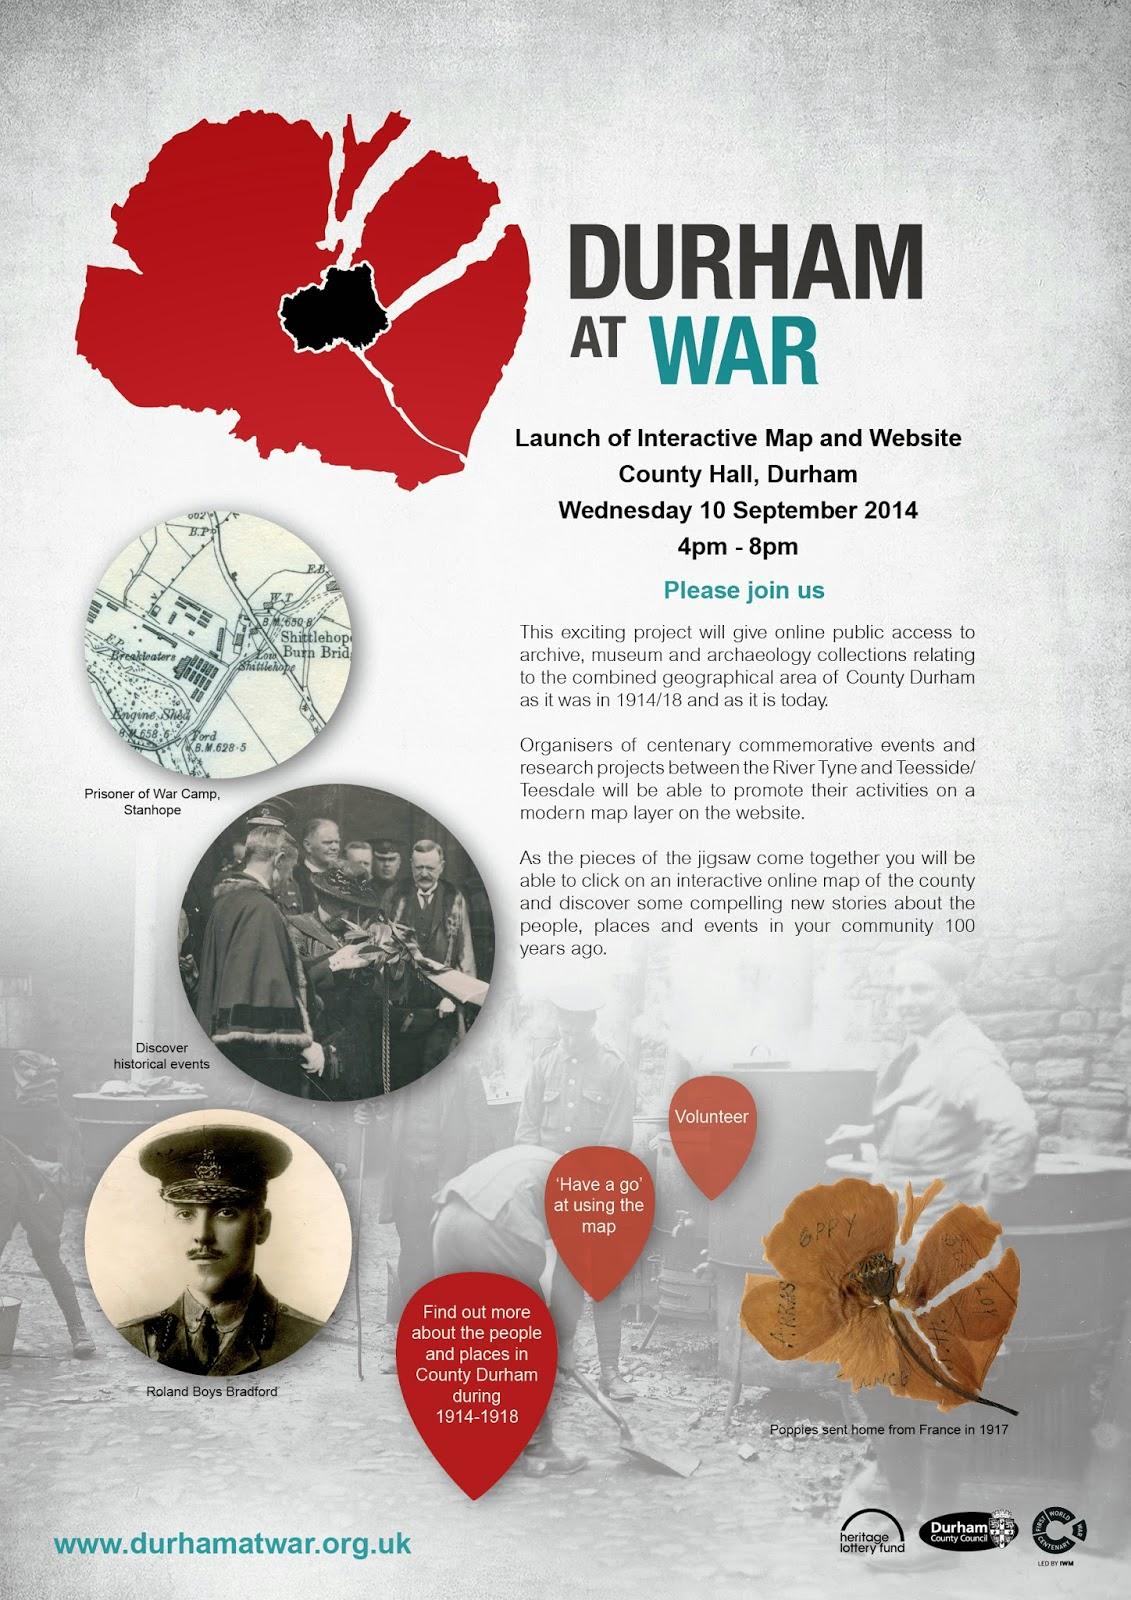 Flier for Durham at War website launch event 10 September 2014, 4-8pm, County Hall